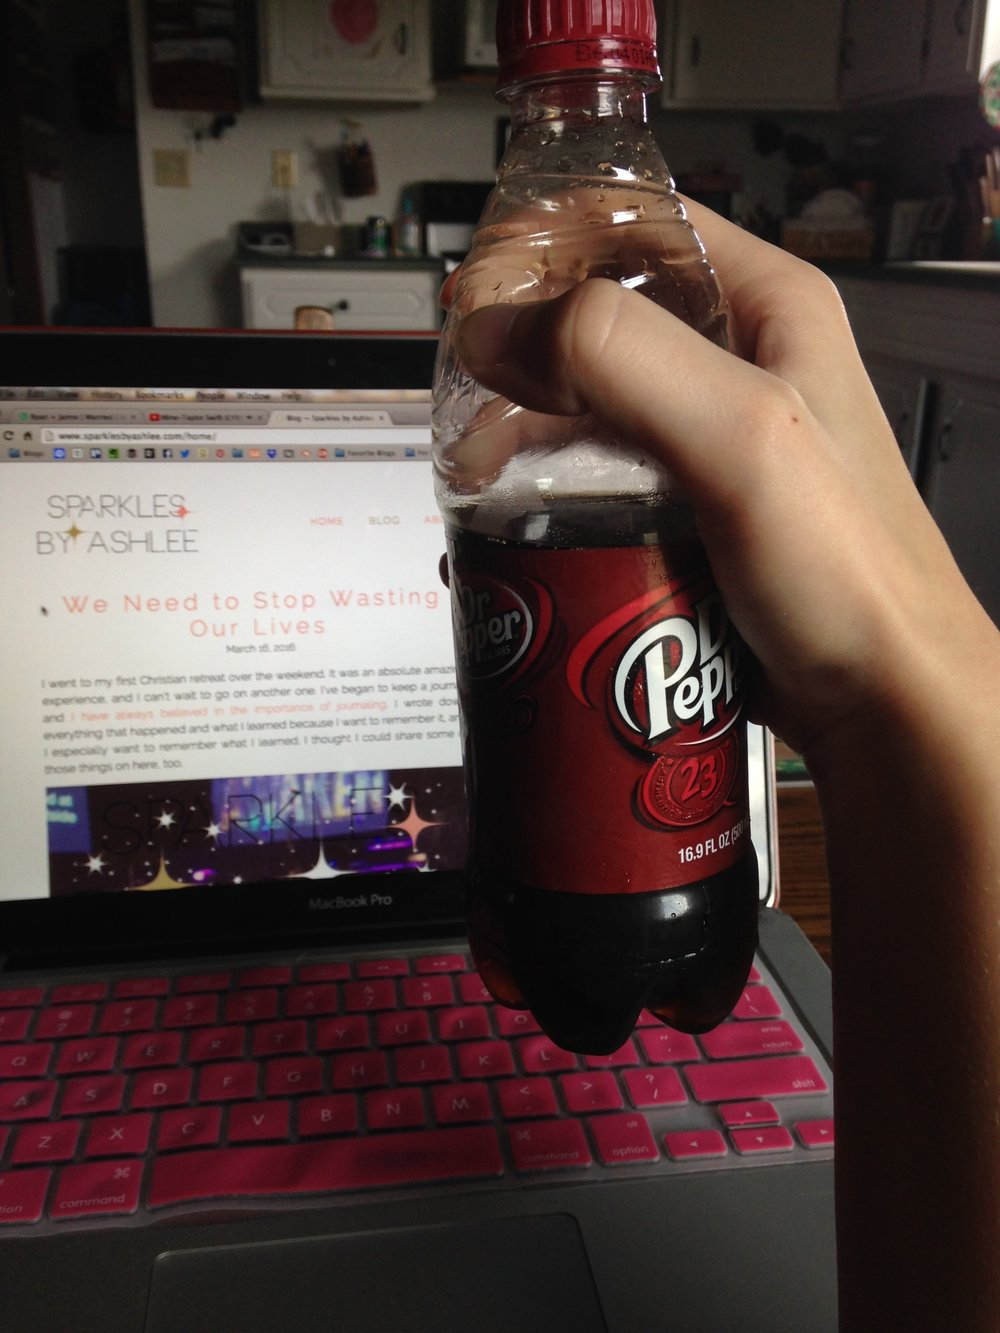 dr-pepper-laptop.jpg